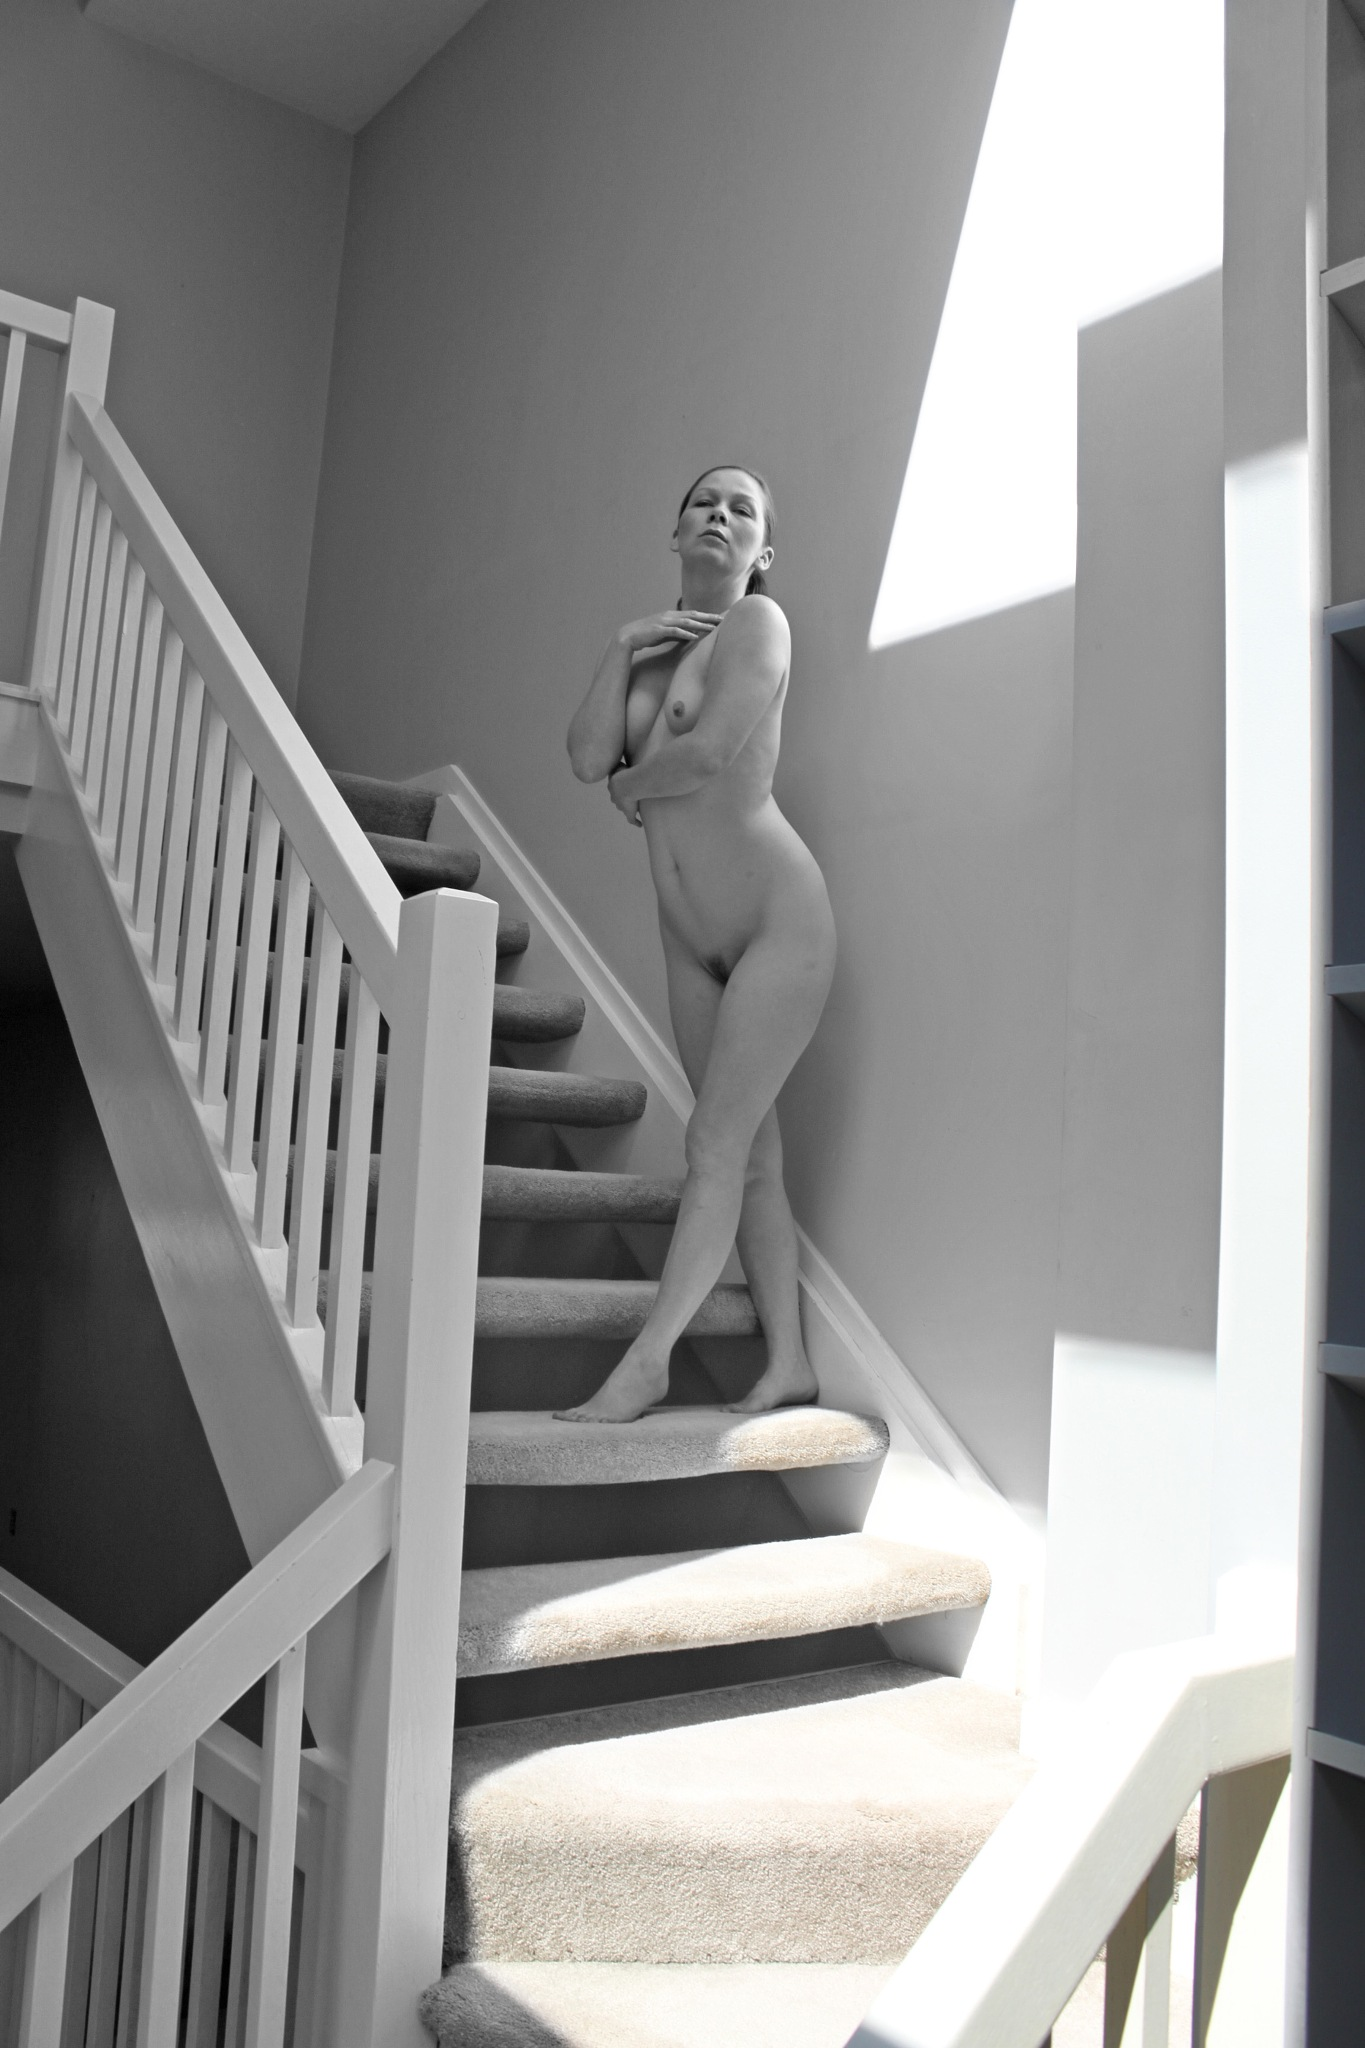 Model Sarah at the townhouse by robertlperson